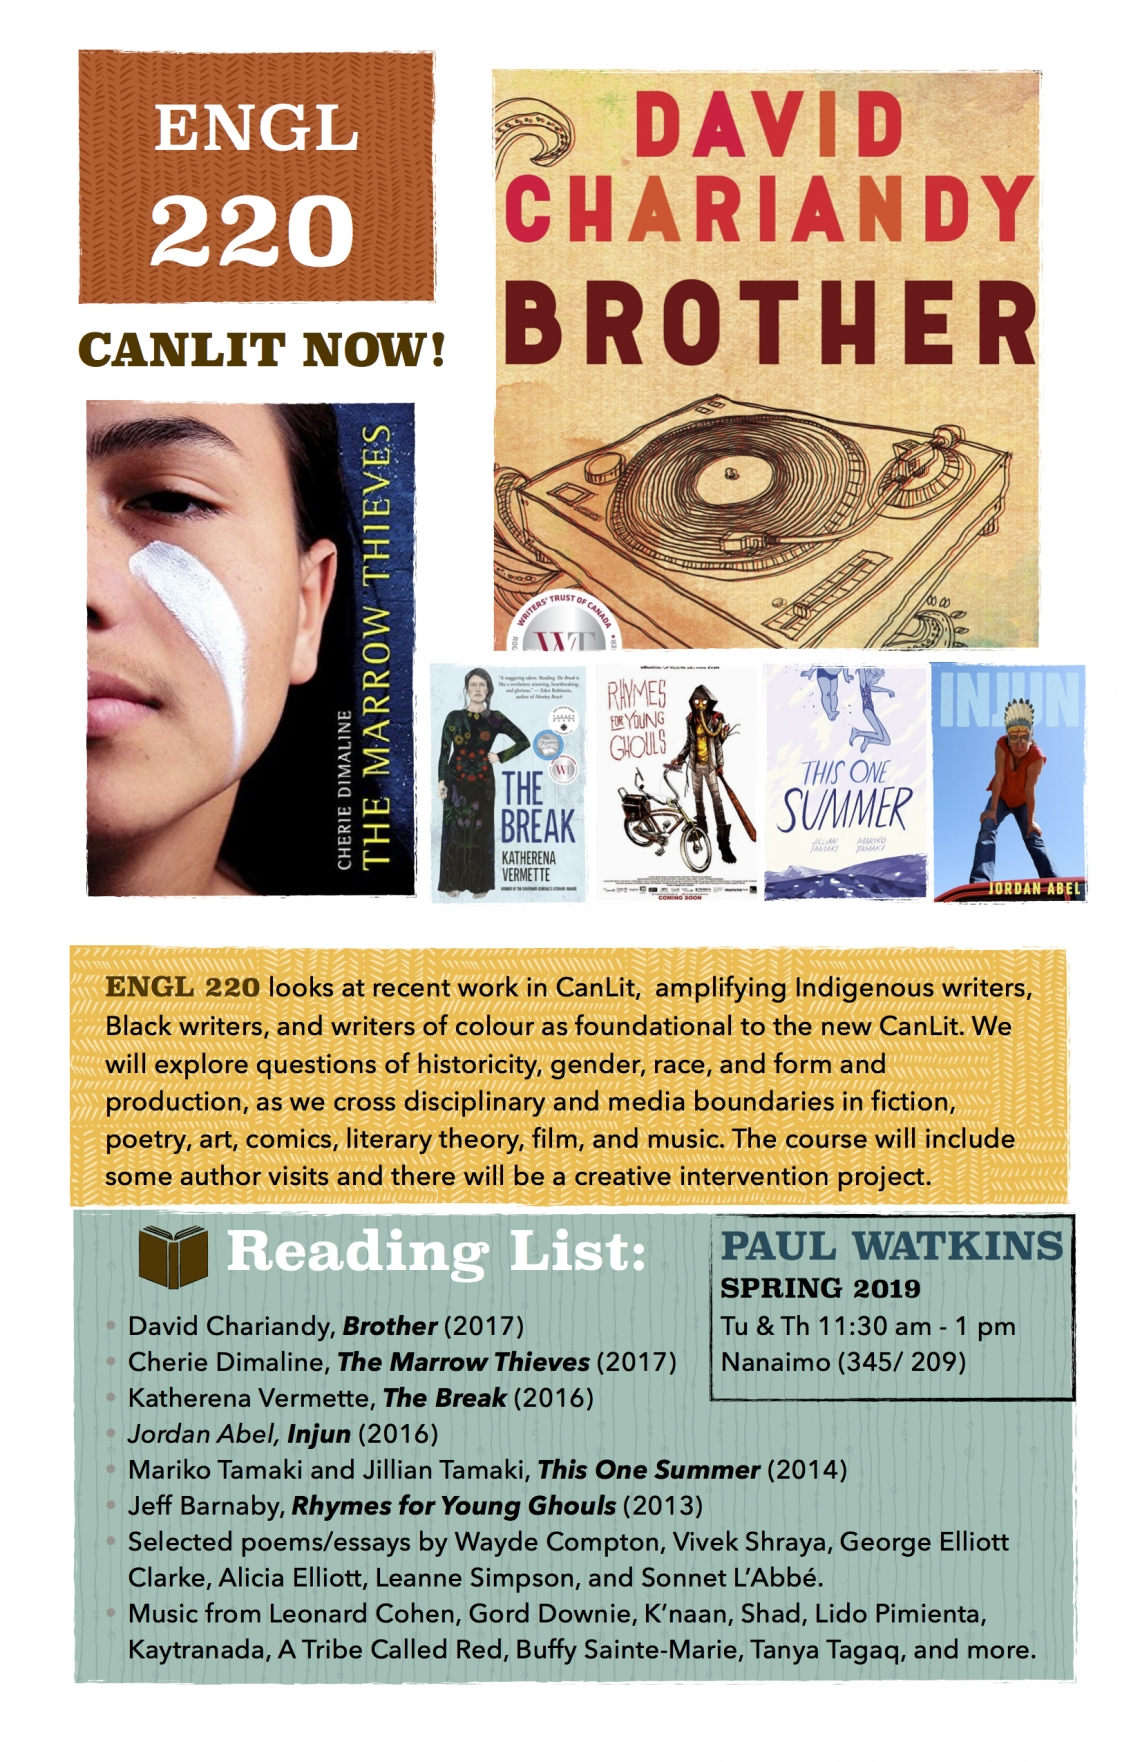 ENGL 220 looks at recent work in CanLit,  amplifying Indigenous writers, Black writers, and writers of colour as foundational to the new CanLit. We will explore questions of historicity, gender, race, and form and production, as we cross disciplinary and